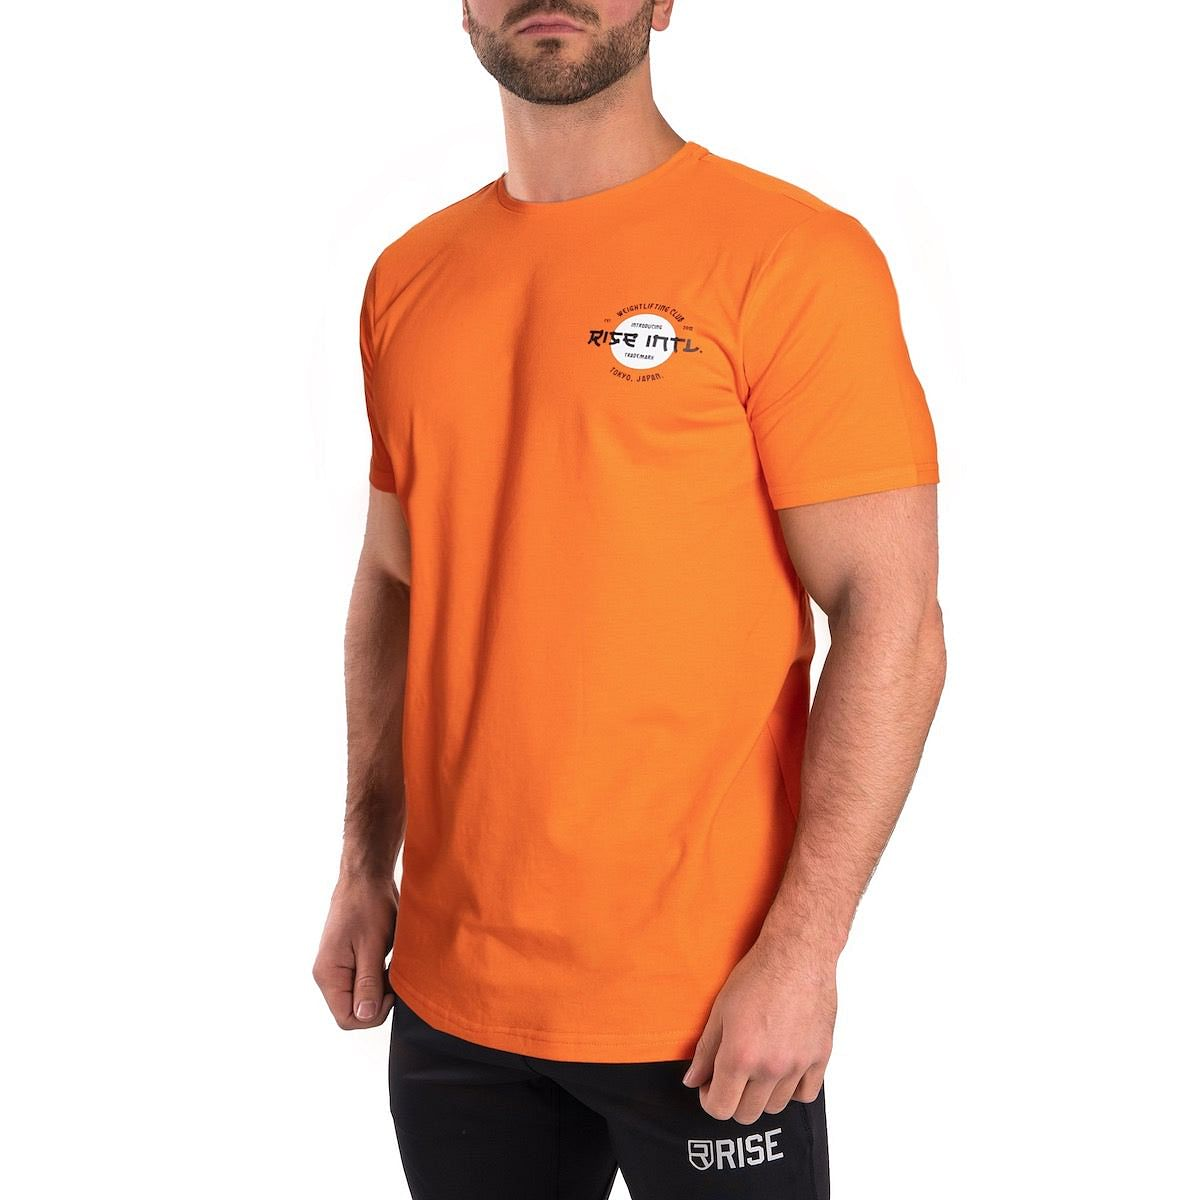 Japan Weightlifting Club Shirt - Orange